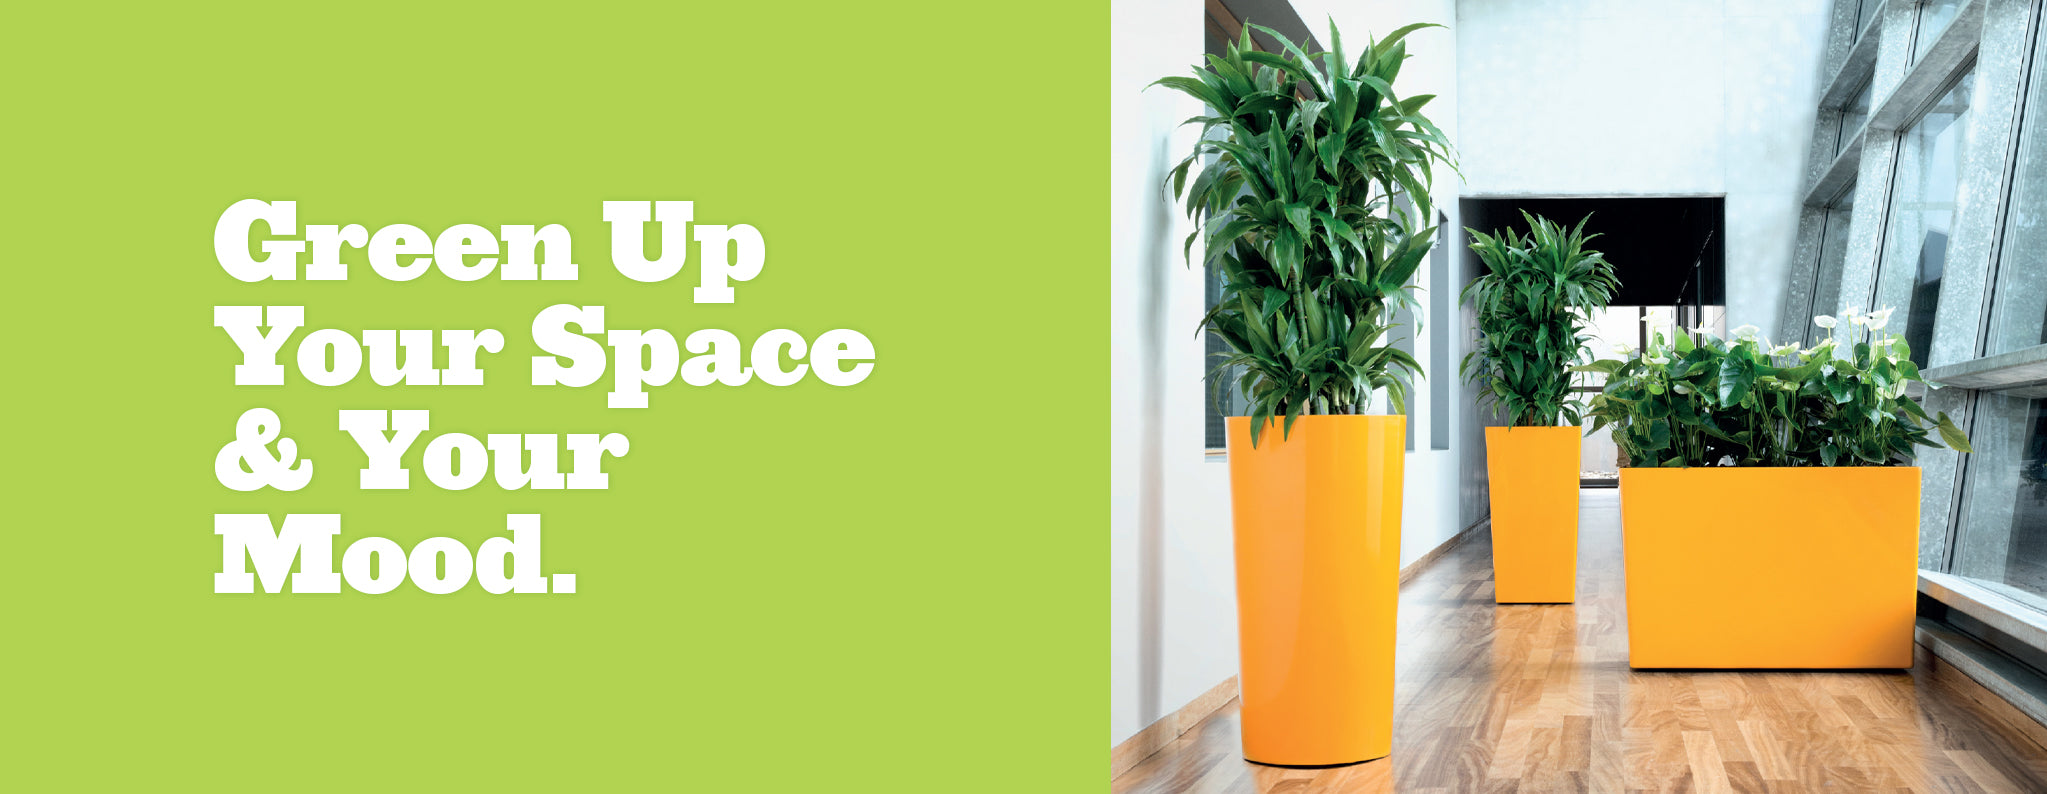 Rise Planters: Green up your space and your mood.